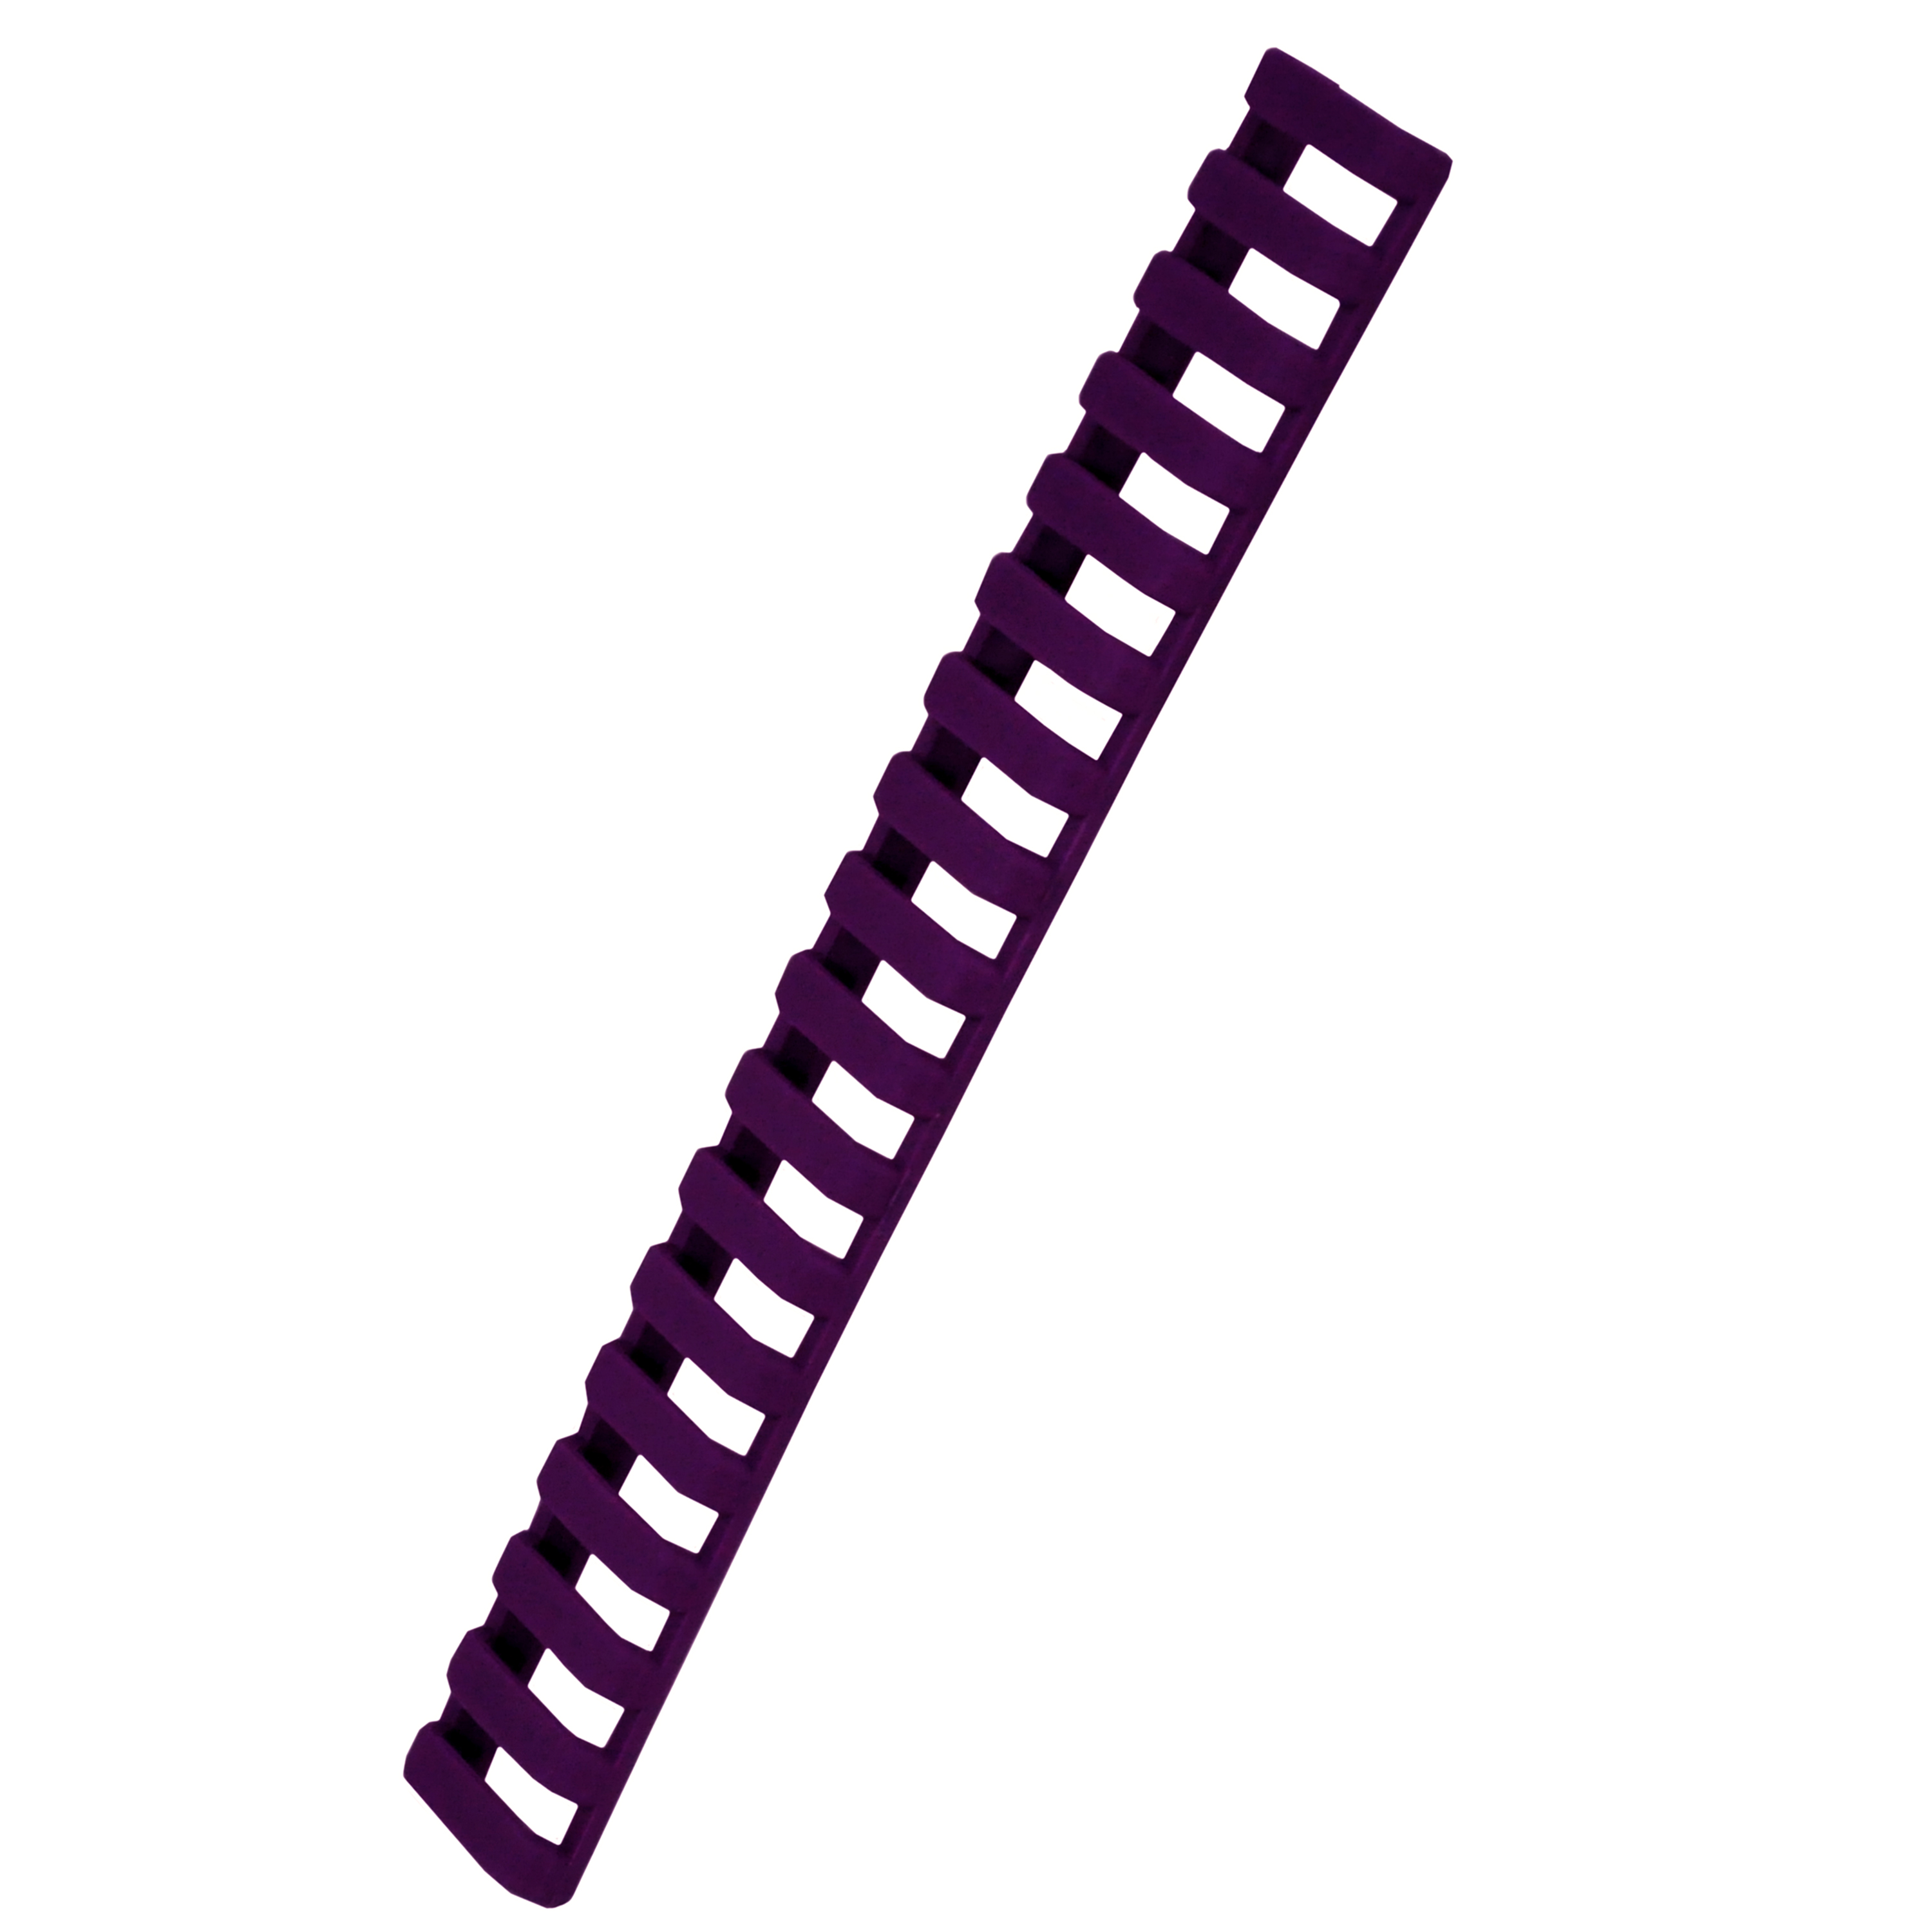 Ergo 18 Slot Ladder Low Pro Rail Covers Purple, Package of 1